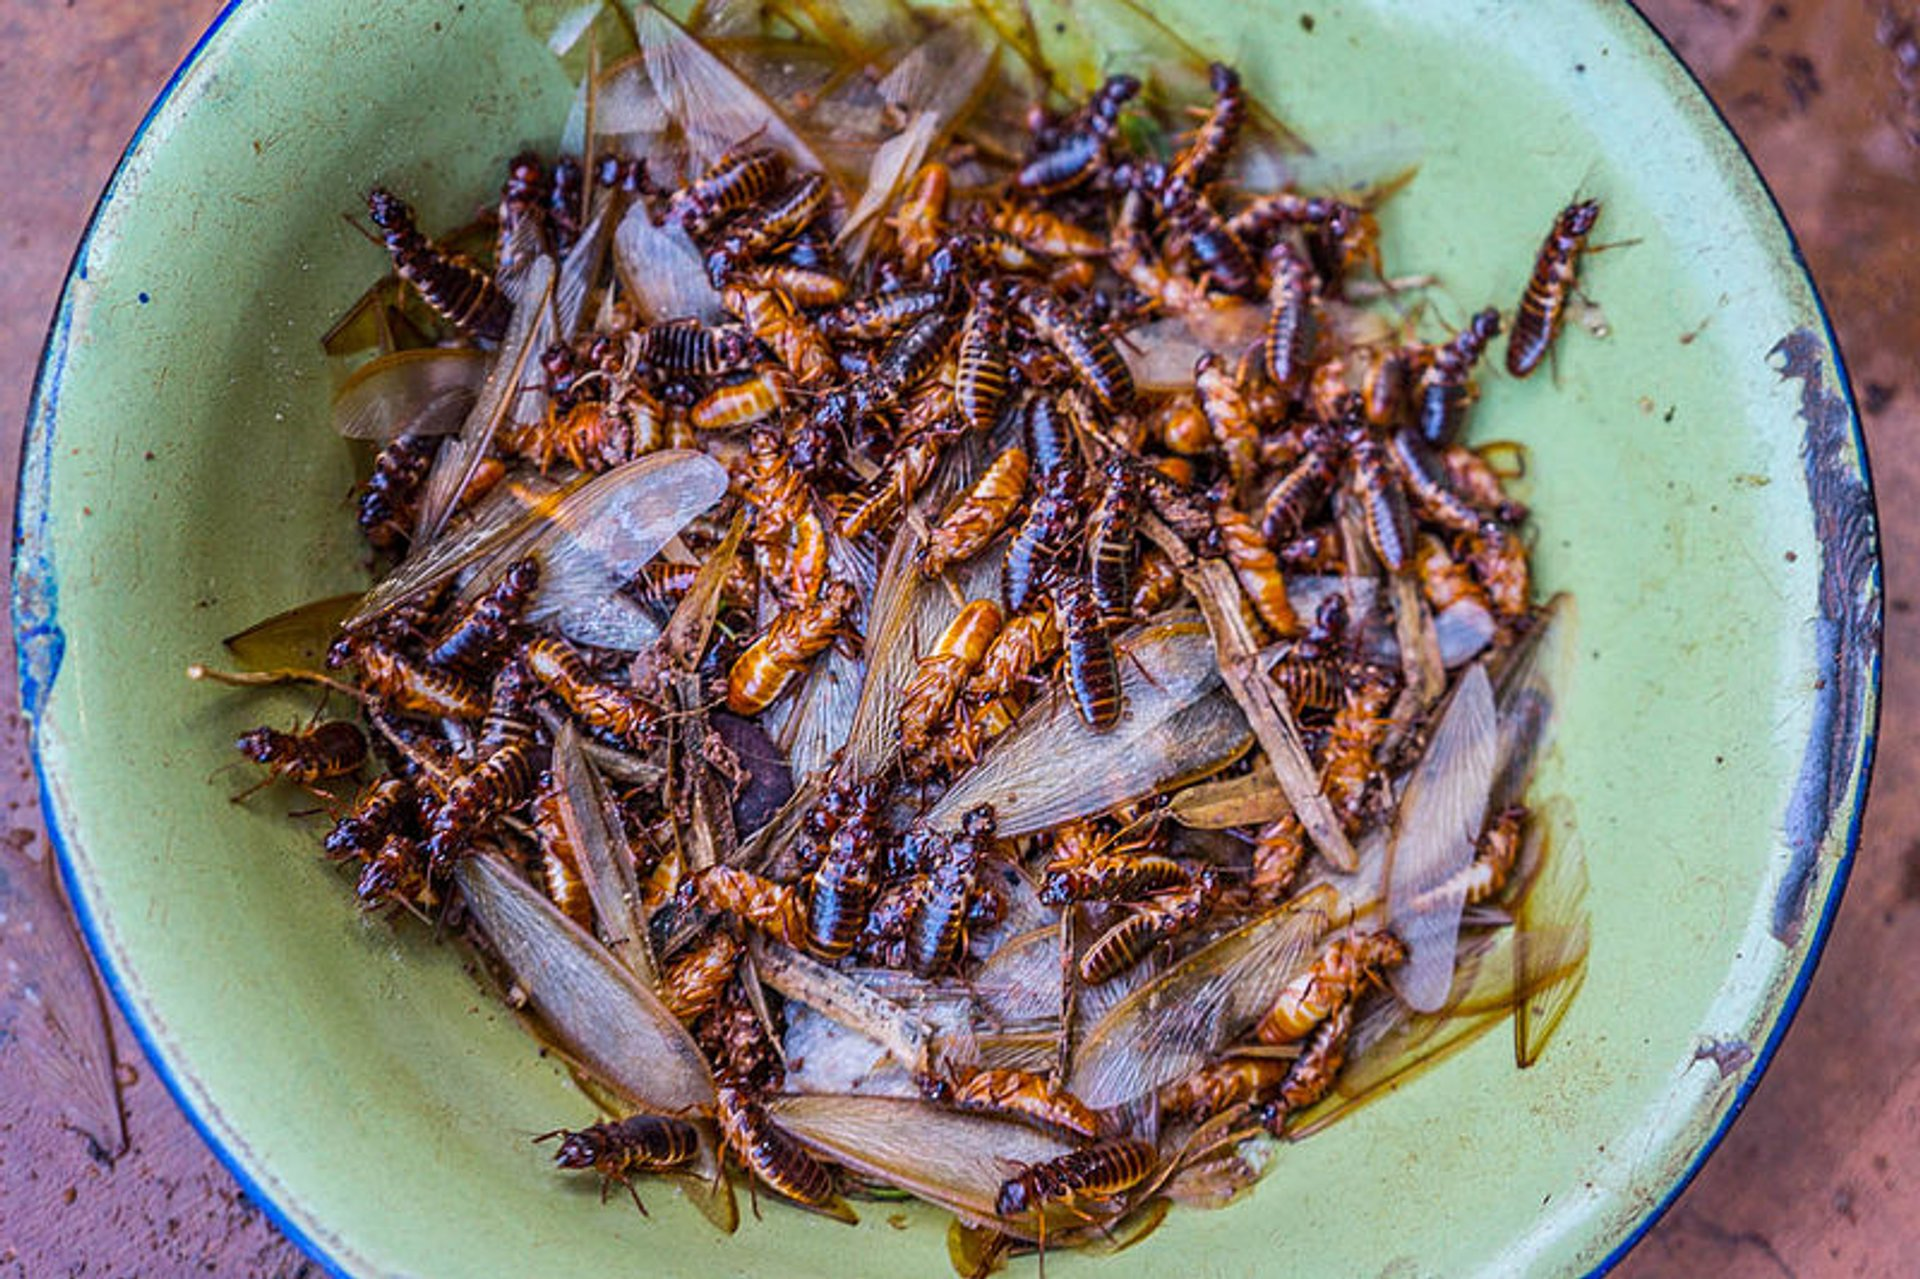 Roasted Termites Season in South Africa 2020 – Rove.me